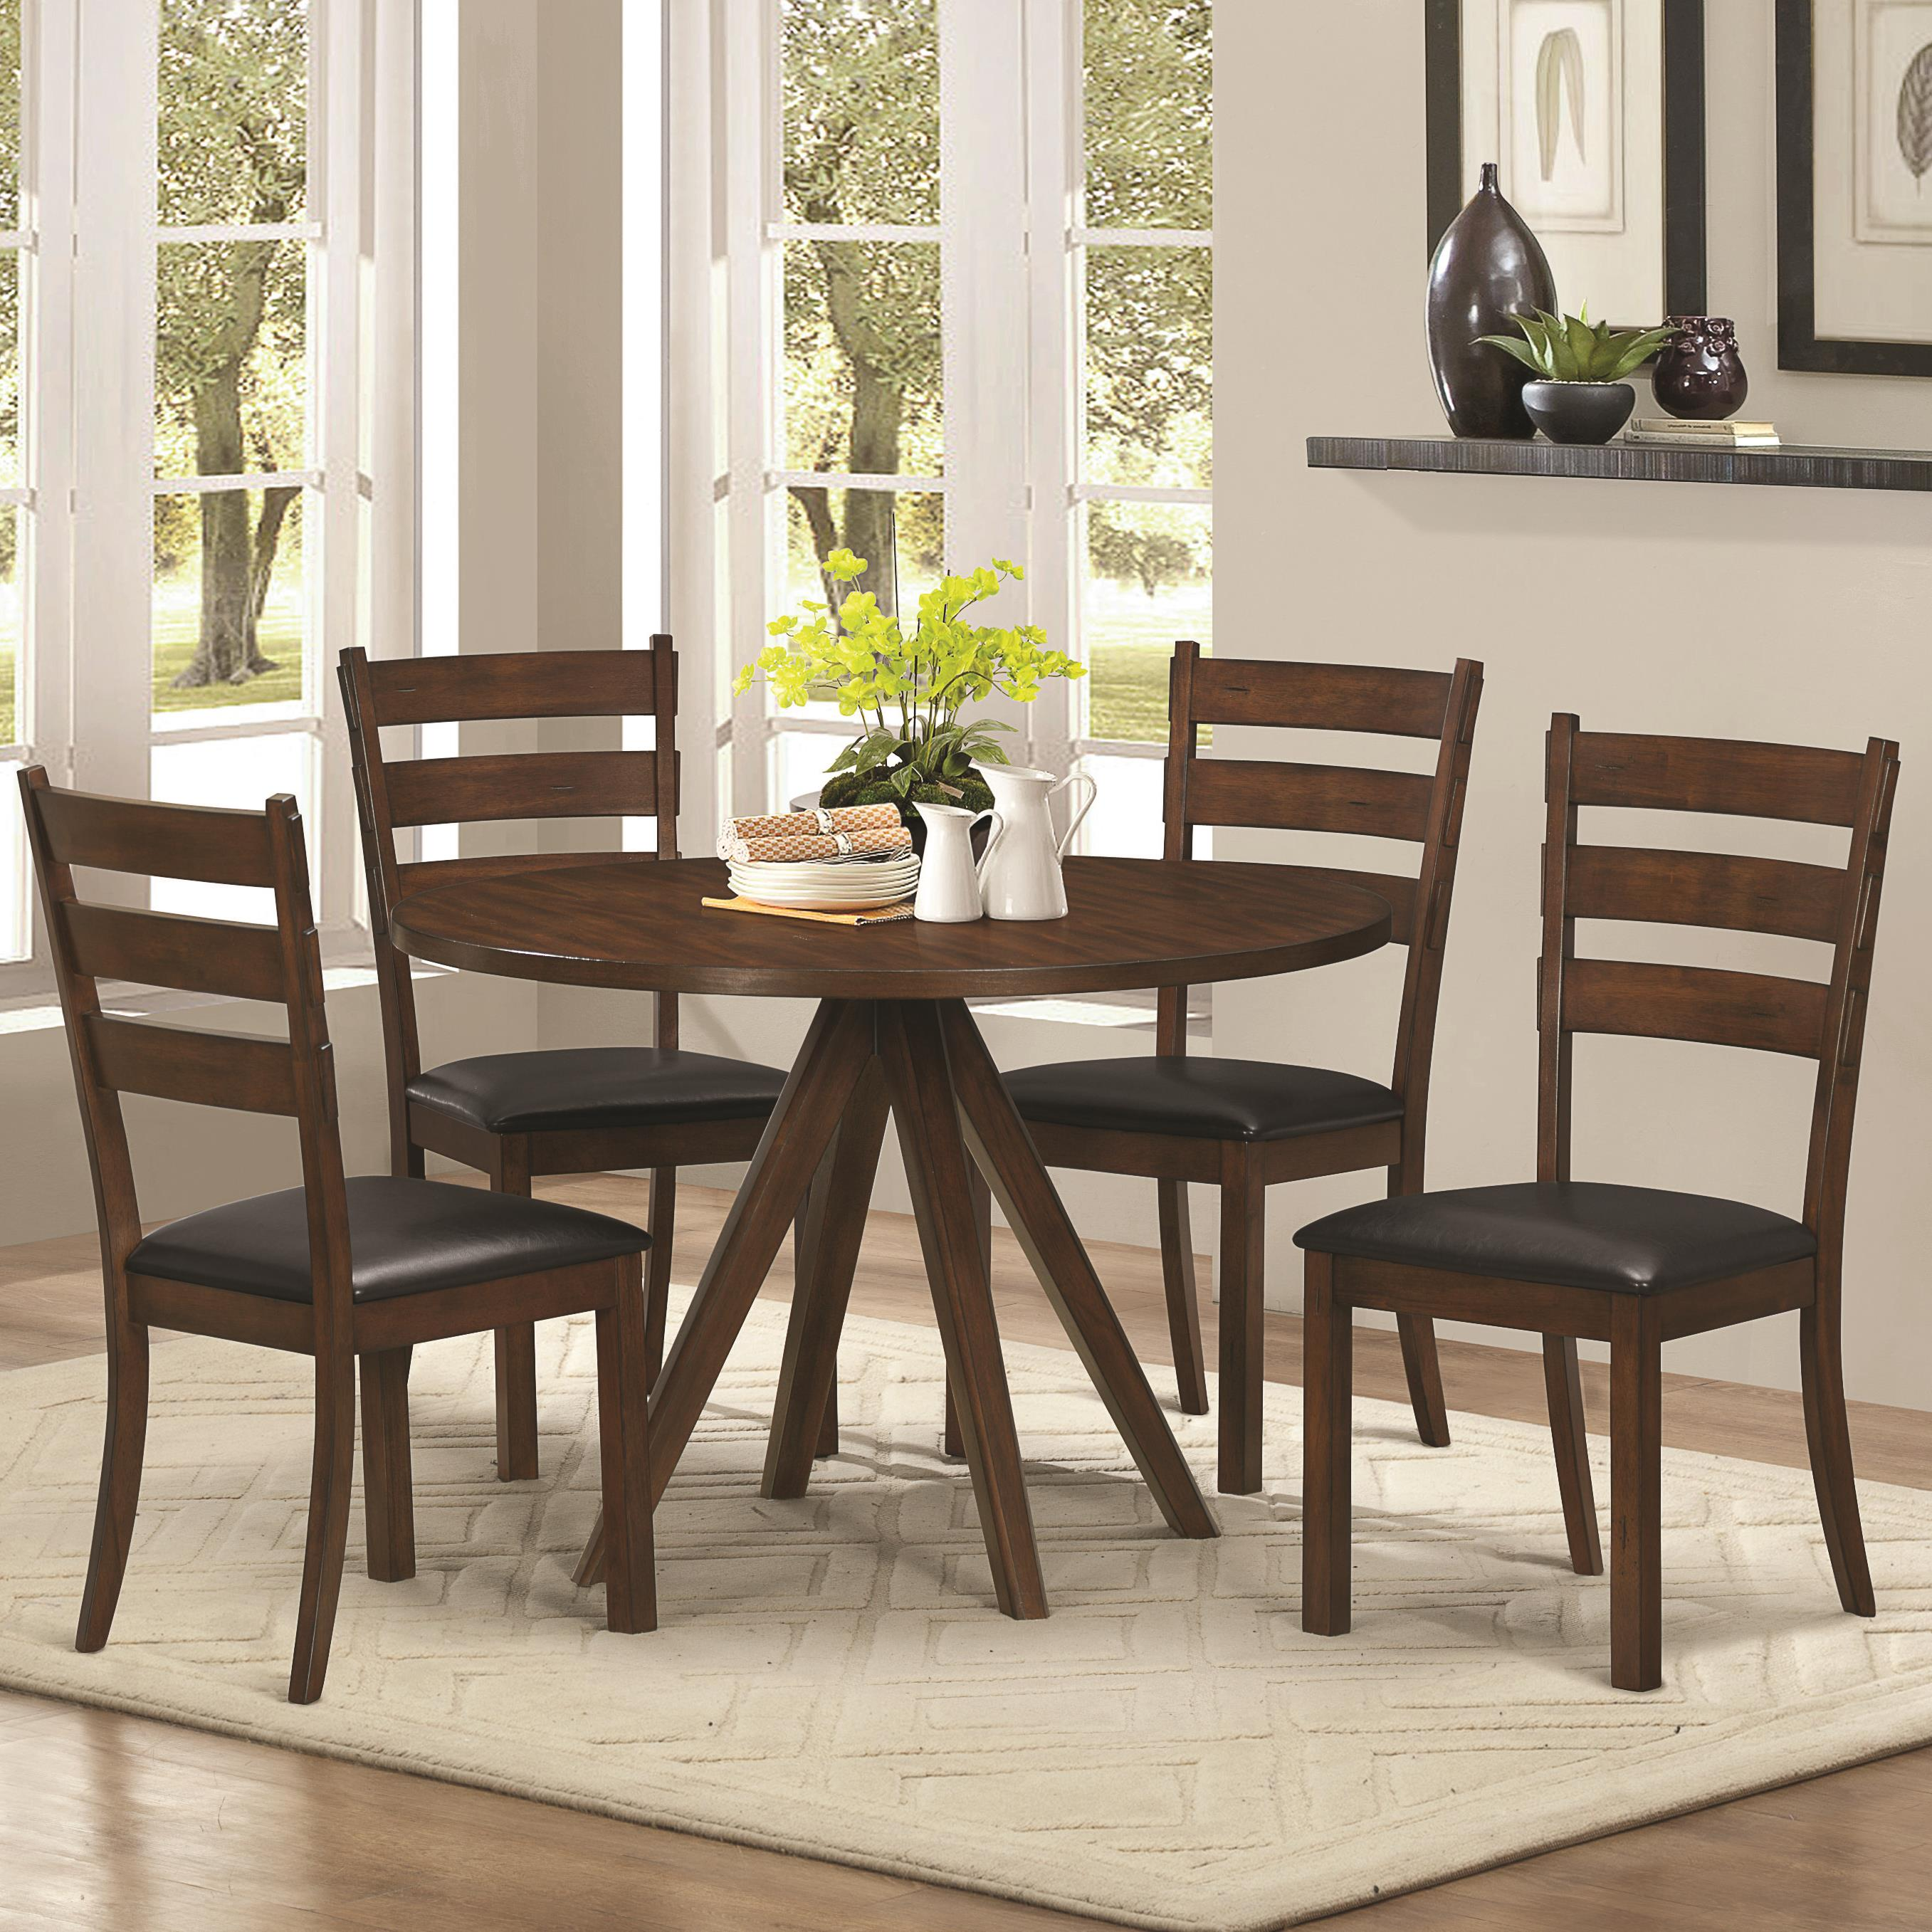 Coaster Urbana 5 Piece Table & Chair Set - Item Number: 105340+4x105342